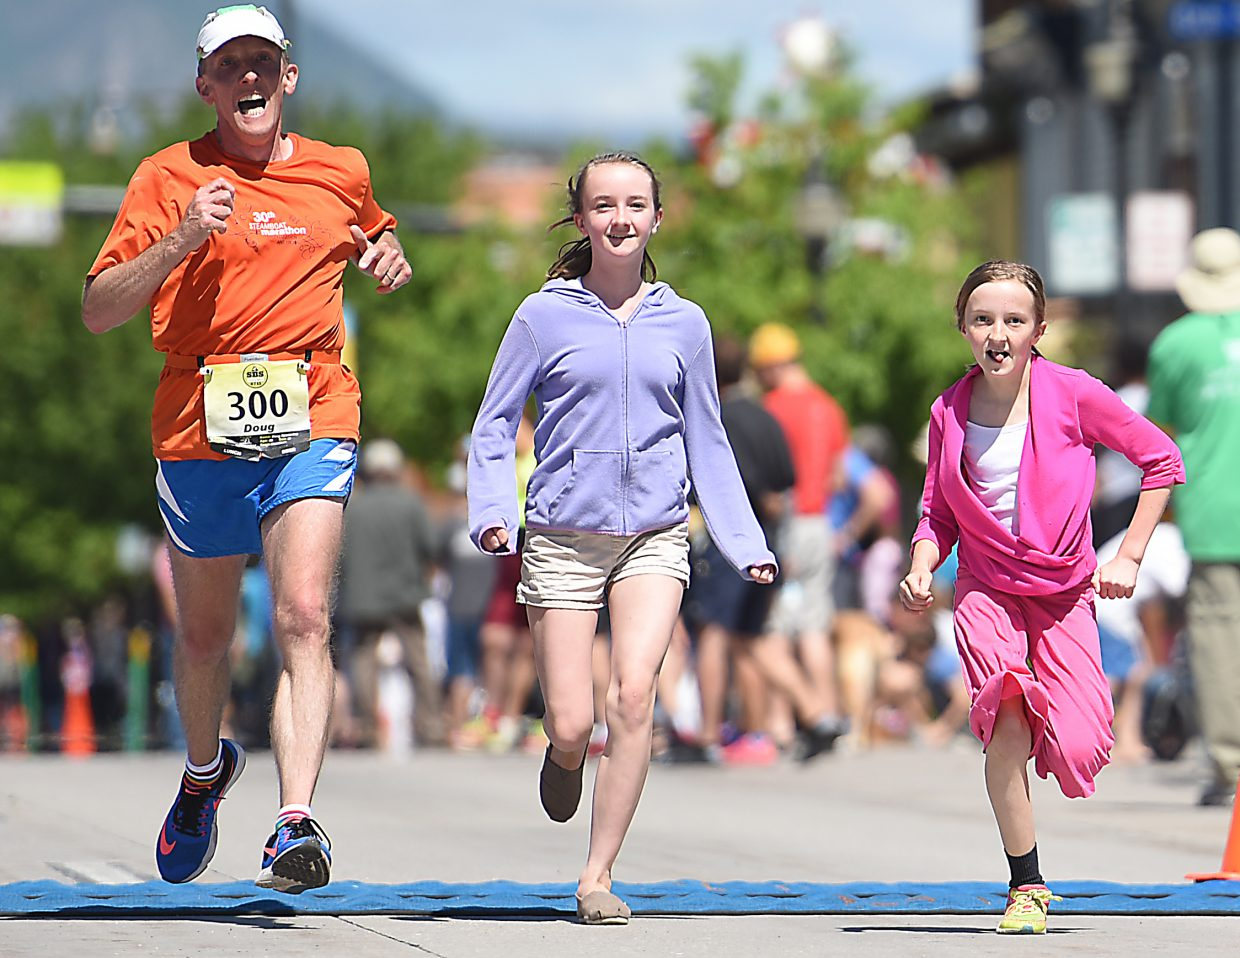 Doug Spannring flies toward the finish line of the Steamboat Marathon, encouraged on by his children, Olivia, 10, right, and Elizabeth, 12.